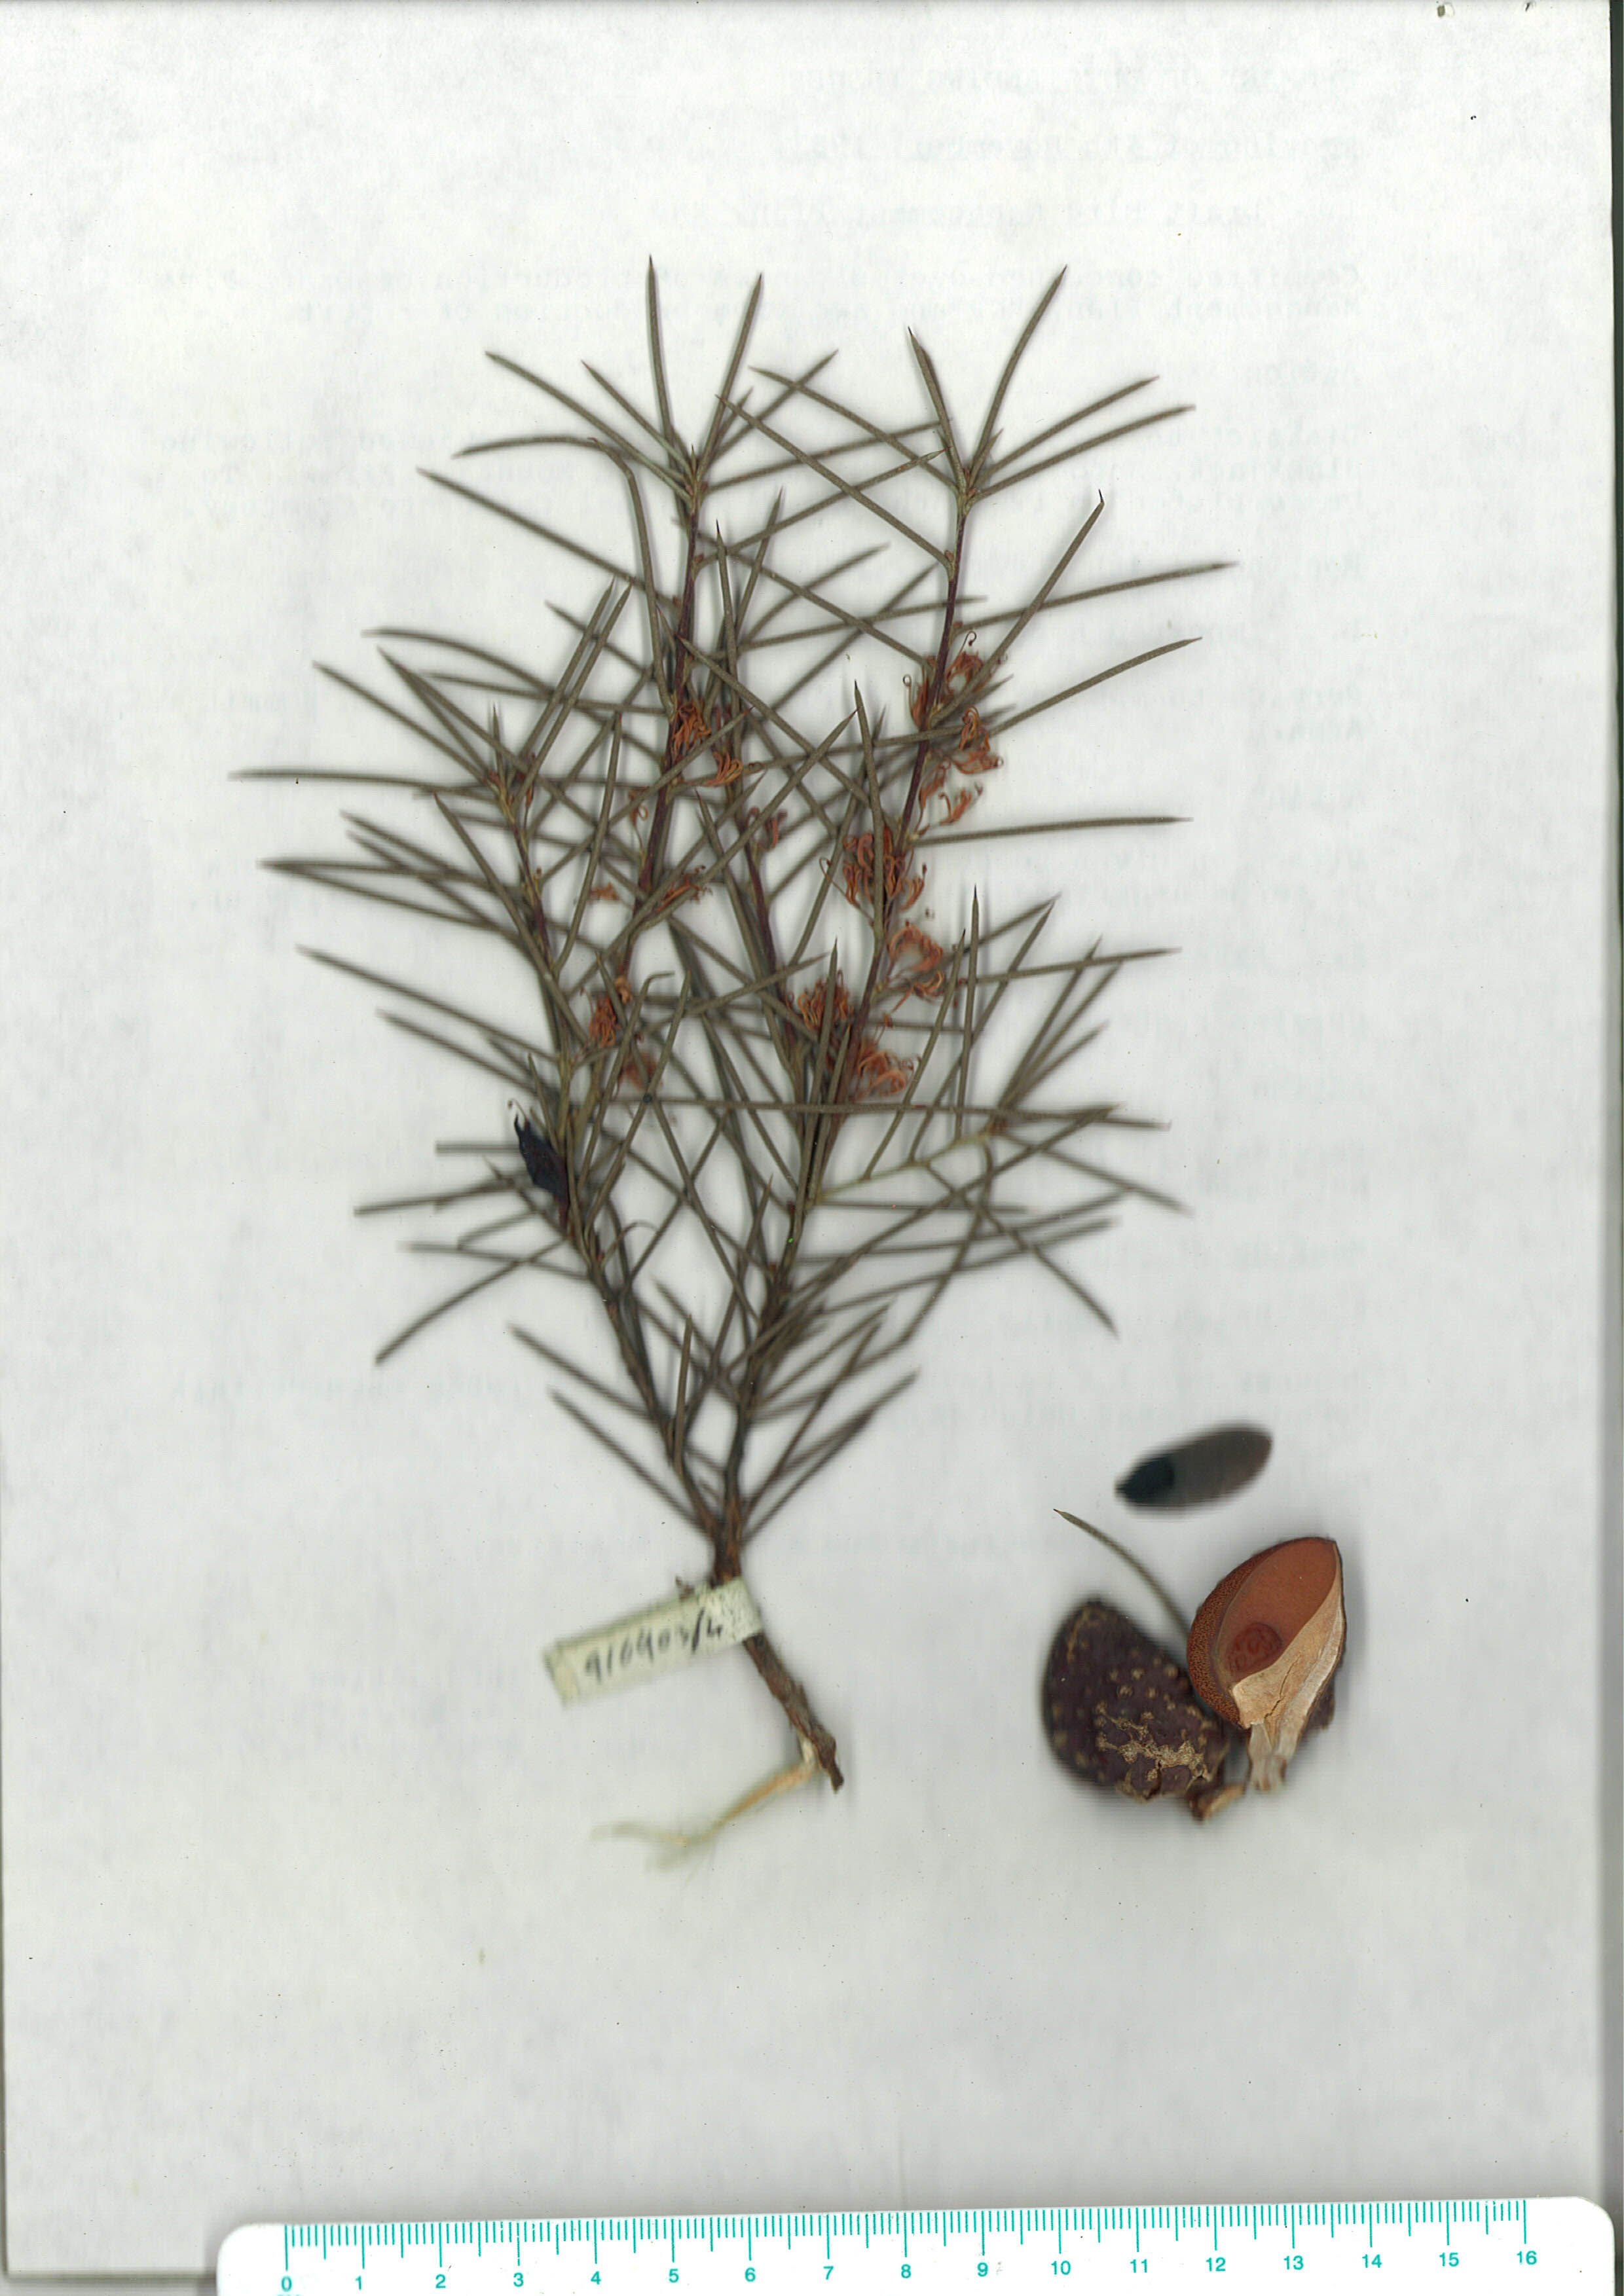 Scanned herbarium image of Hakea sericea